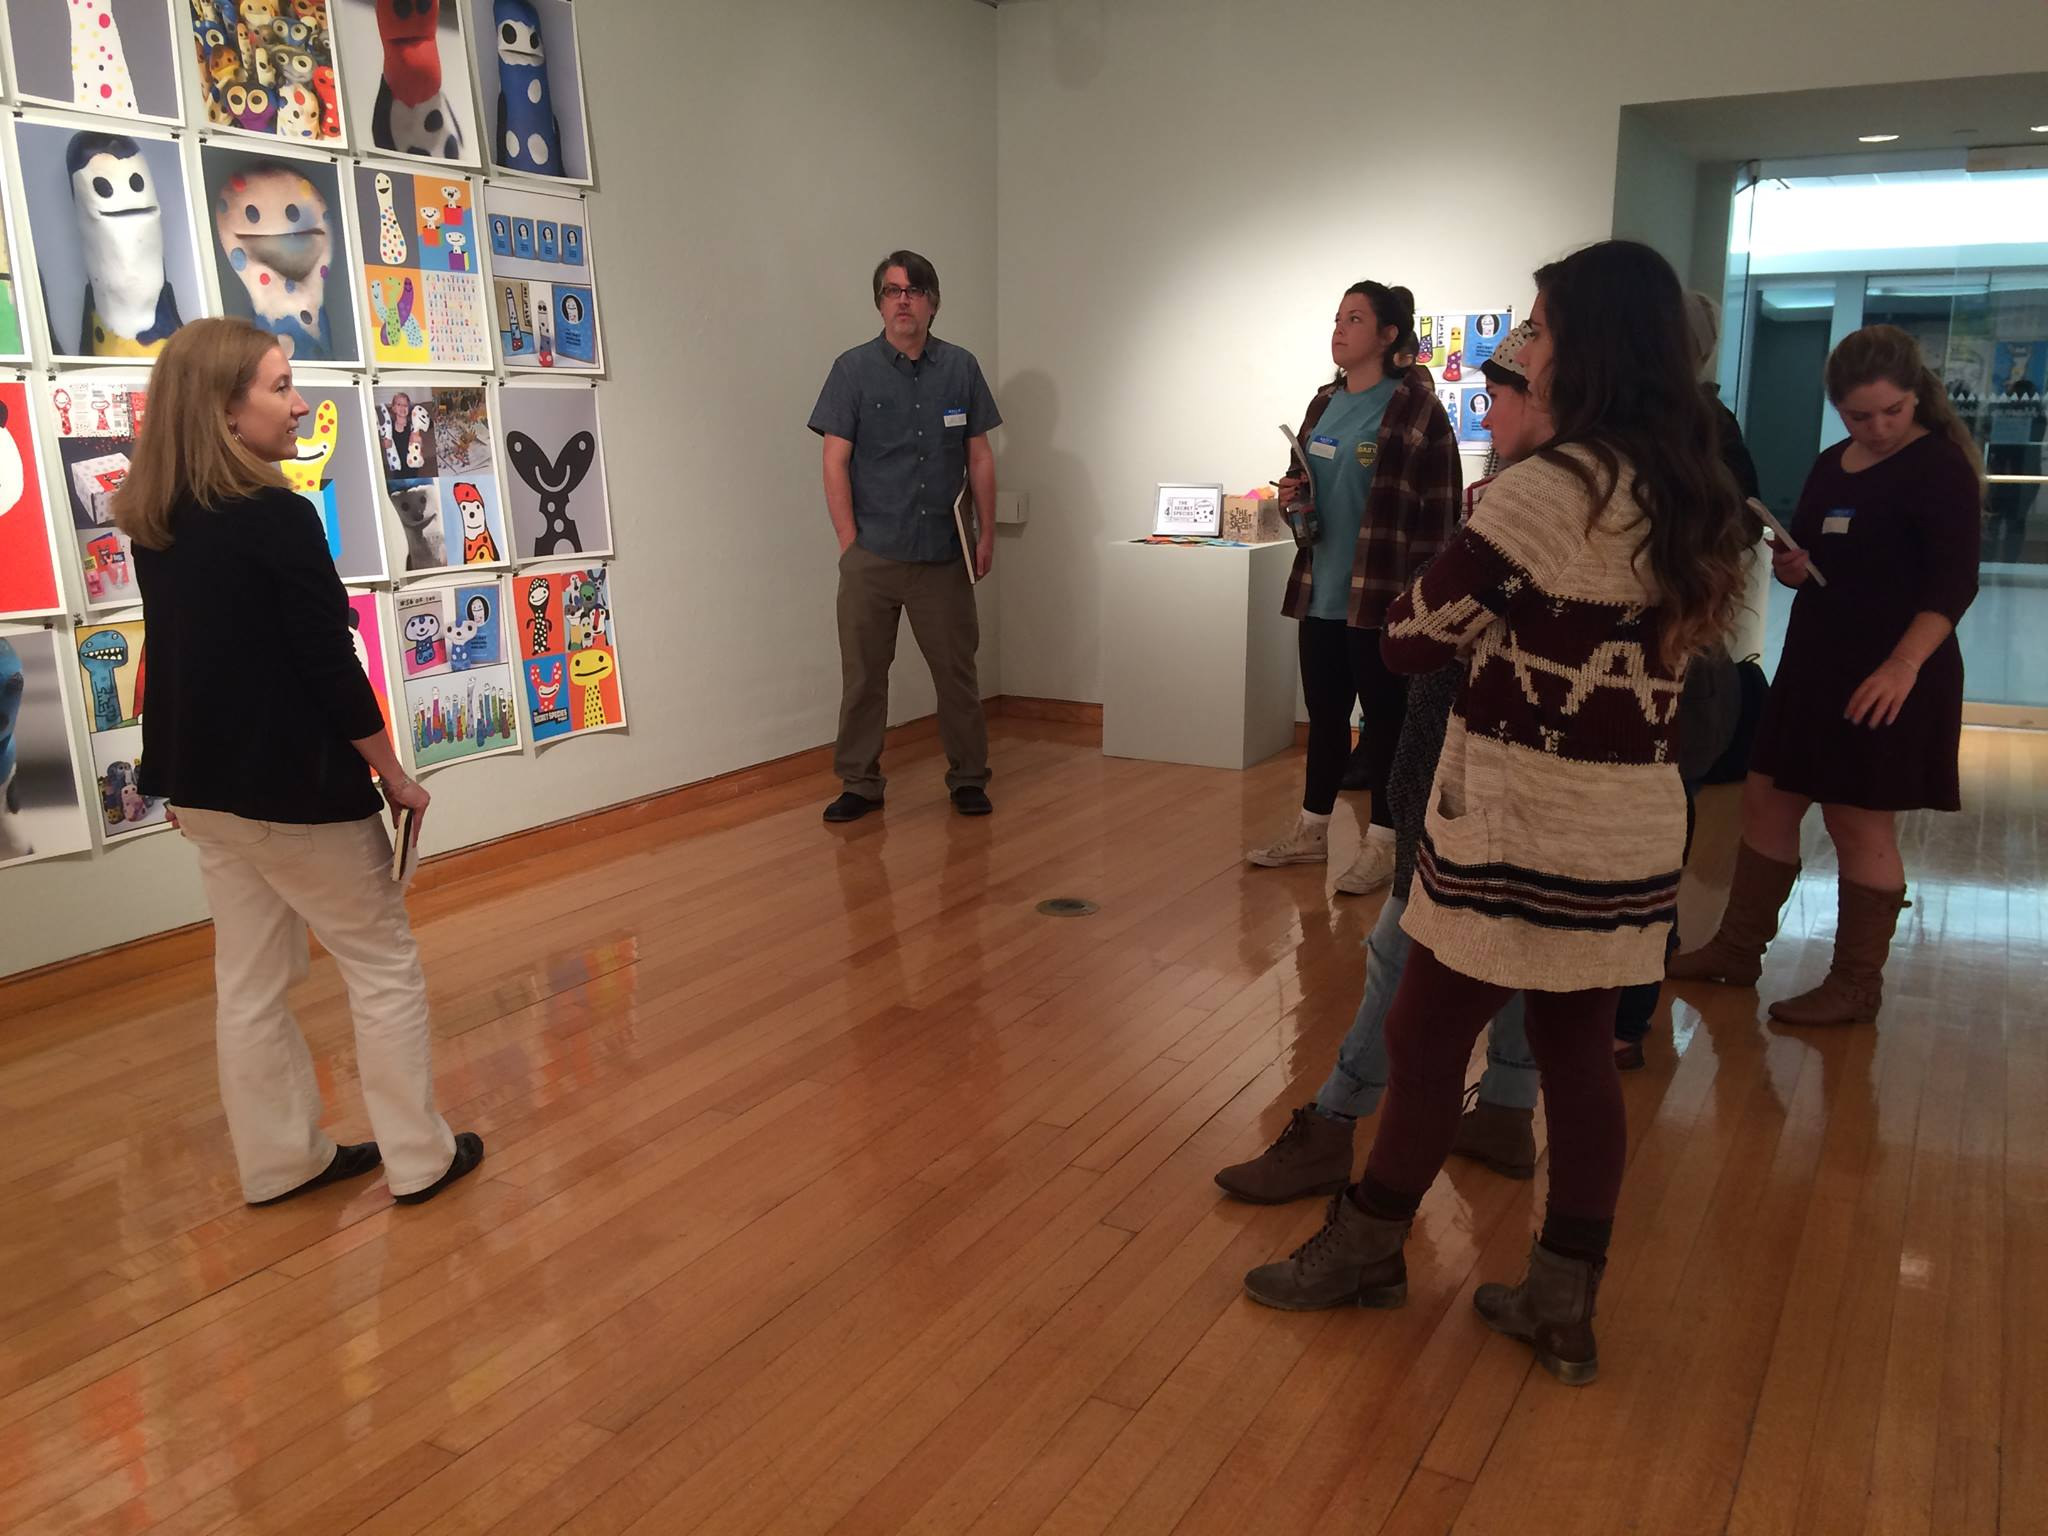 Dr. Danker conducted several of her classes in the gallery so I could talk to students about my work. Students gave really innovative ways they could use my creative process in art education.